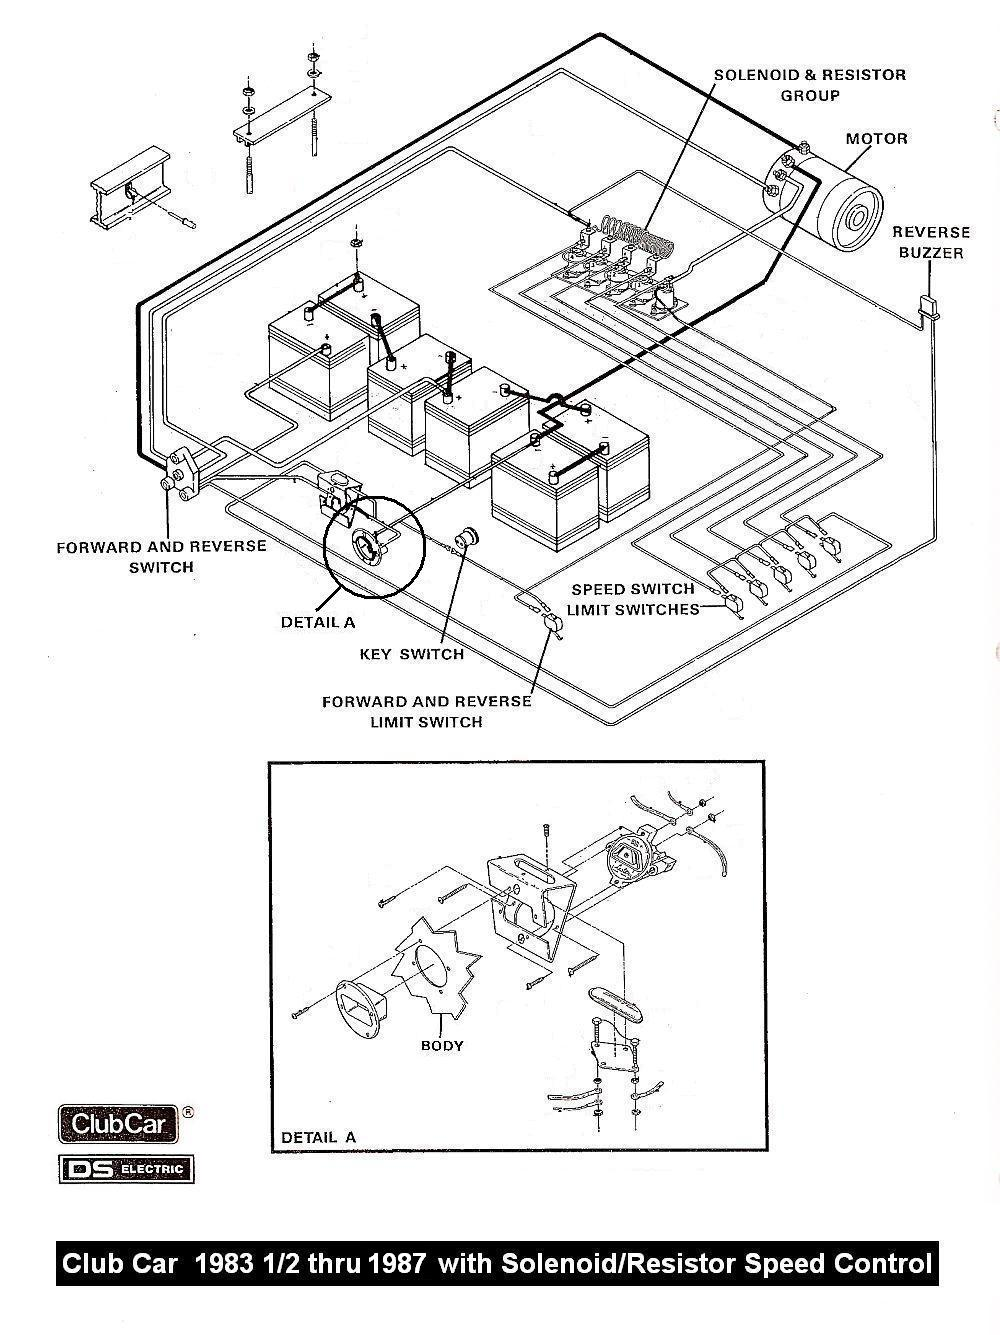 1987 club car wiring diagram electrical schematic wiring diagramvintagegolfcartparts com 1985 club car wiring diagram 1987 club car wiring diagram